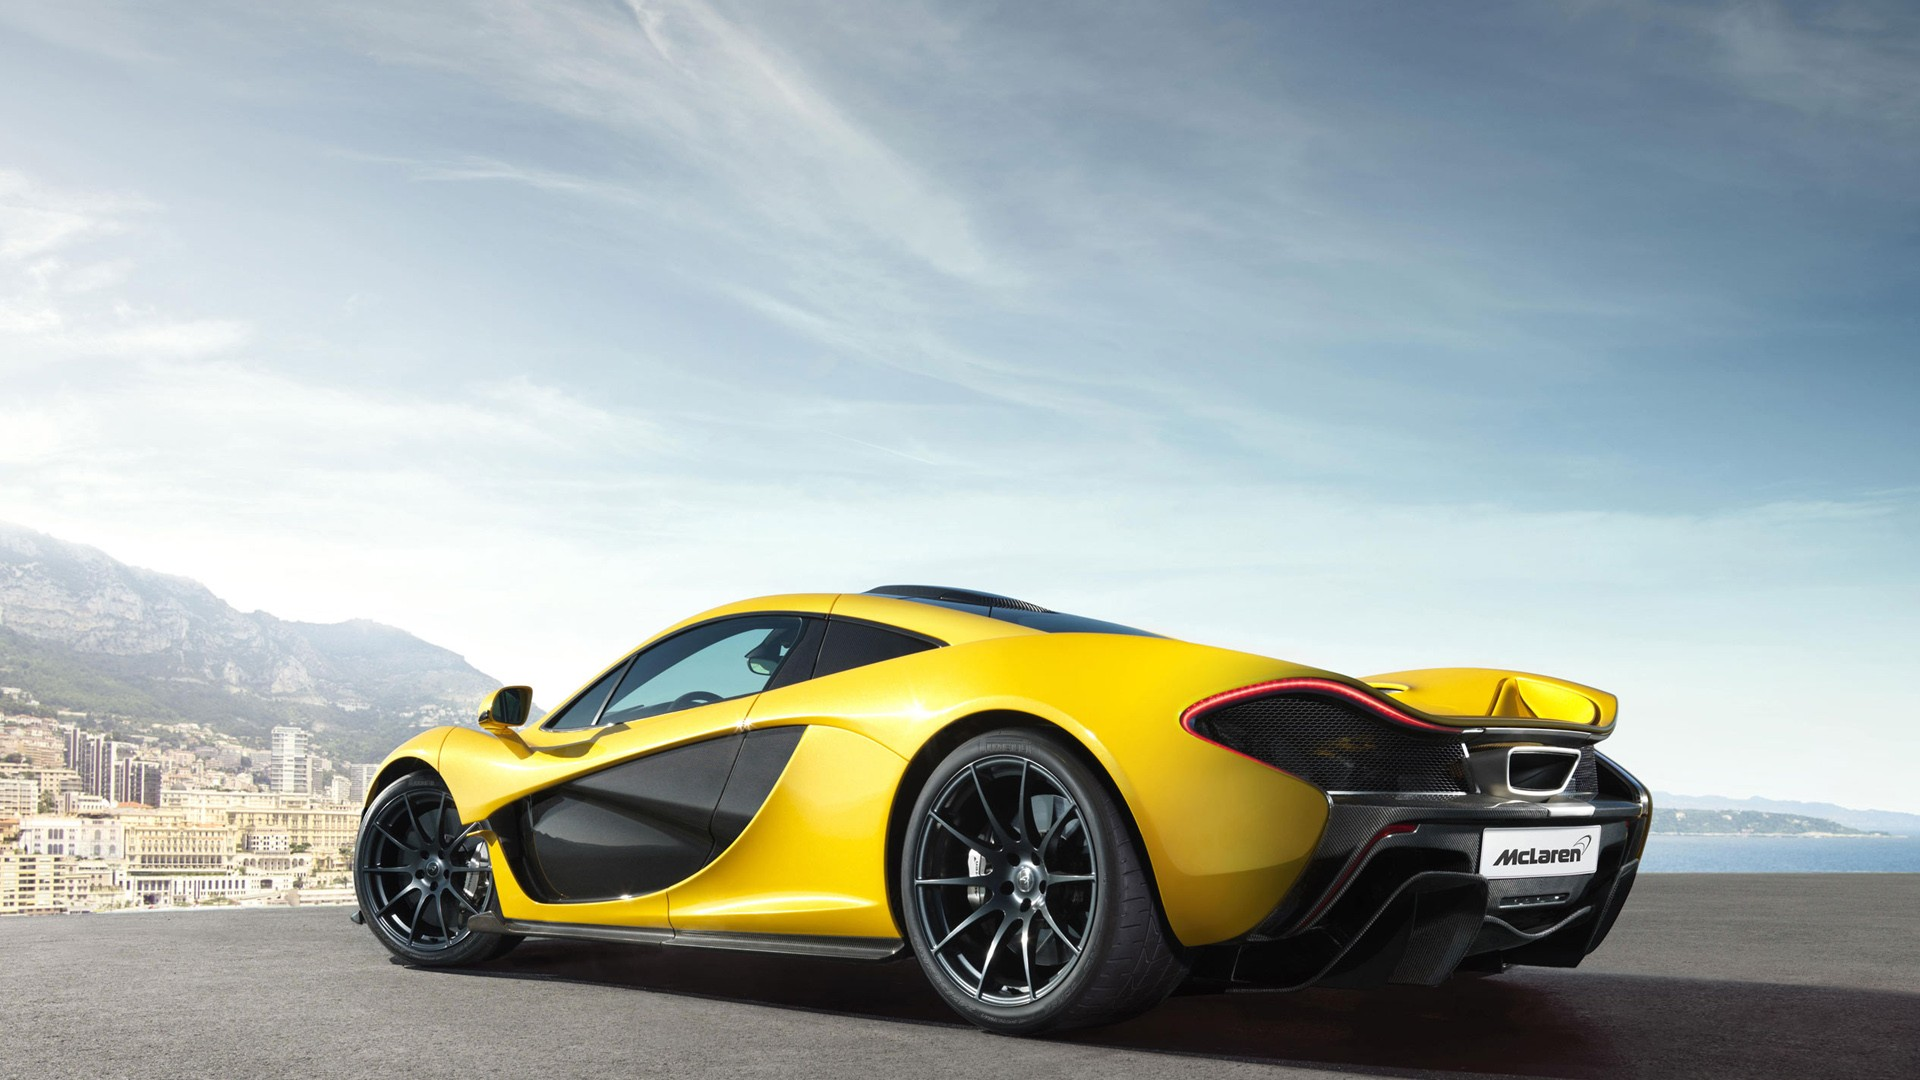 Widescreen Car Wallpapers Hd Mclaren P1 3 Wallpaper In 1920x1080 Resolution